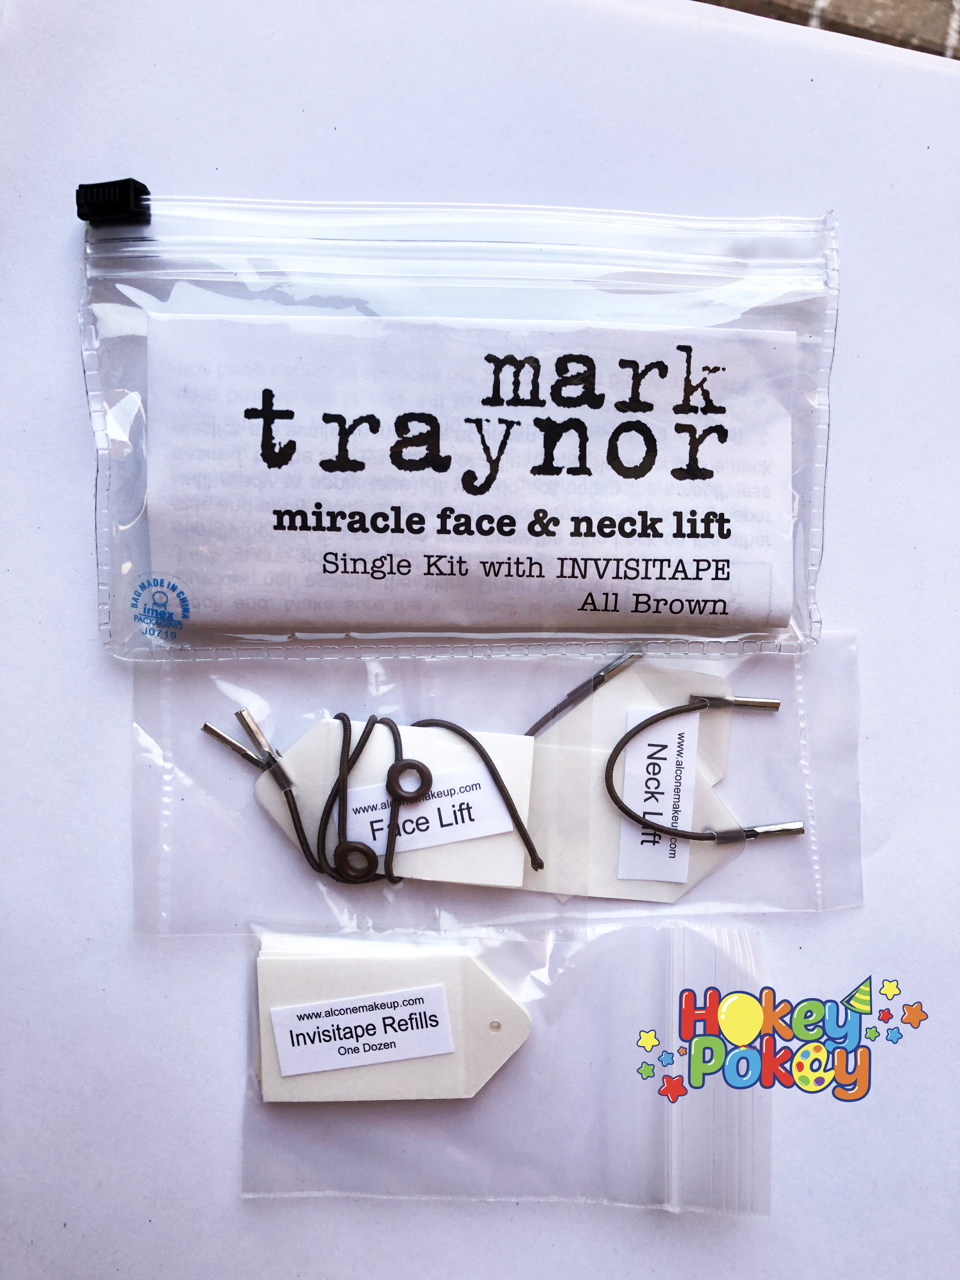 Picture of Mark Traynor Miracle Face & Neck Lift (Single kit with invisitape ) - Brown